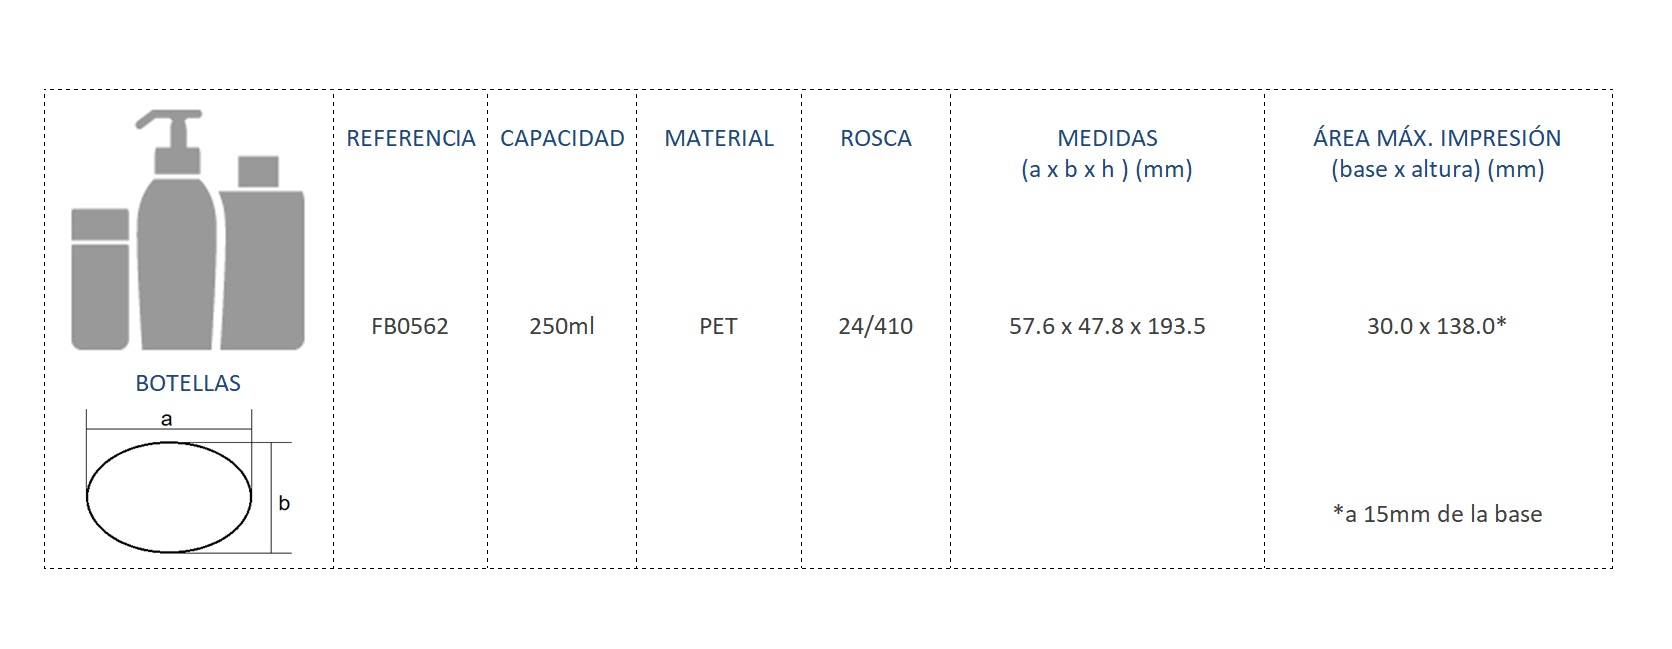 Cuadro de materiales botella FB0562